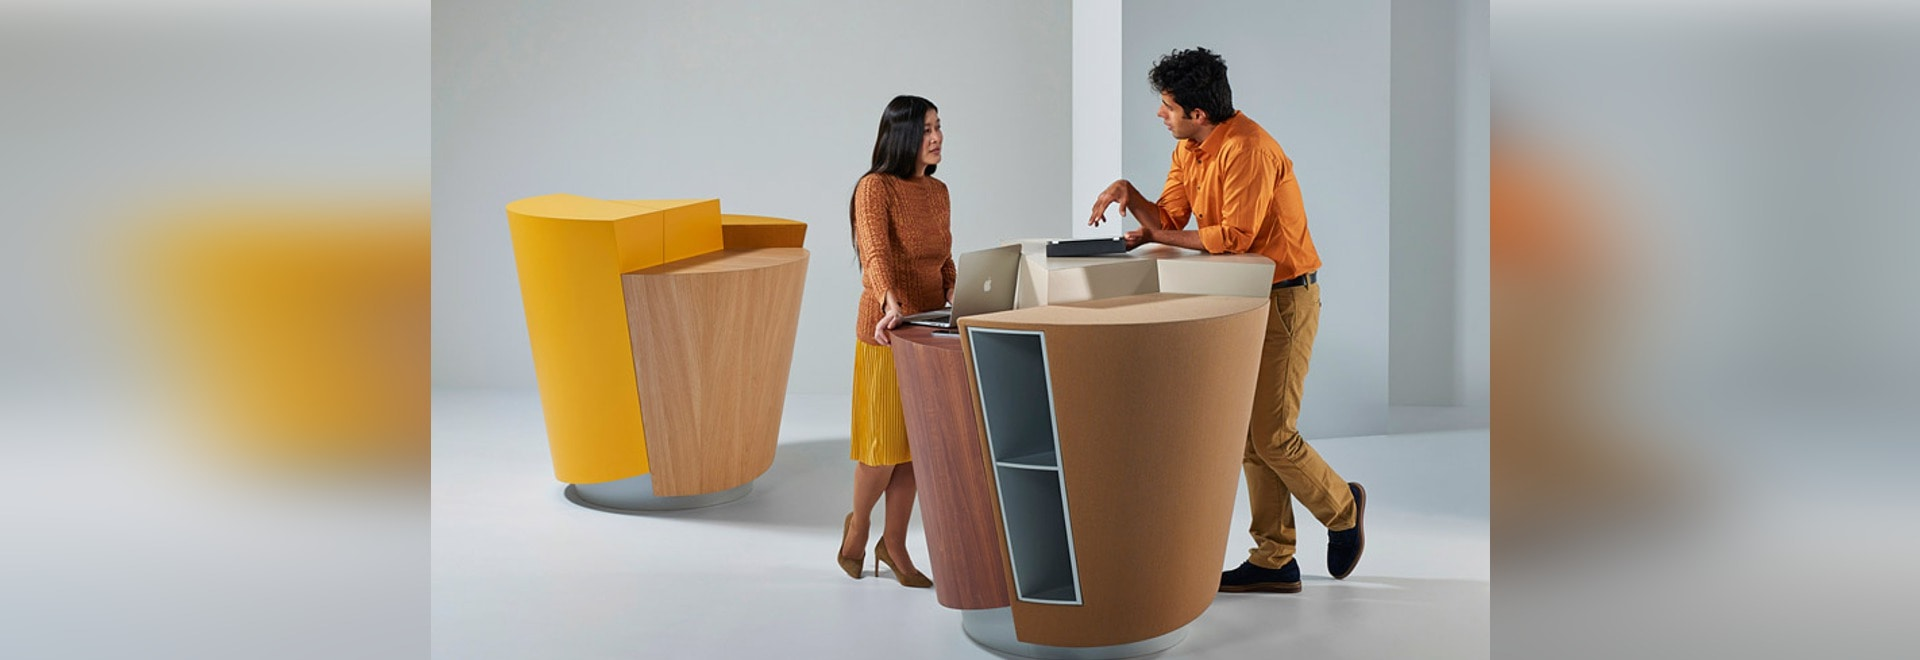 StandTable is a circular podium designed by UNStudio to replace